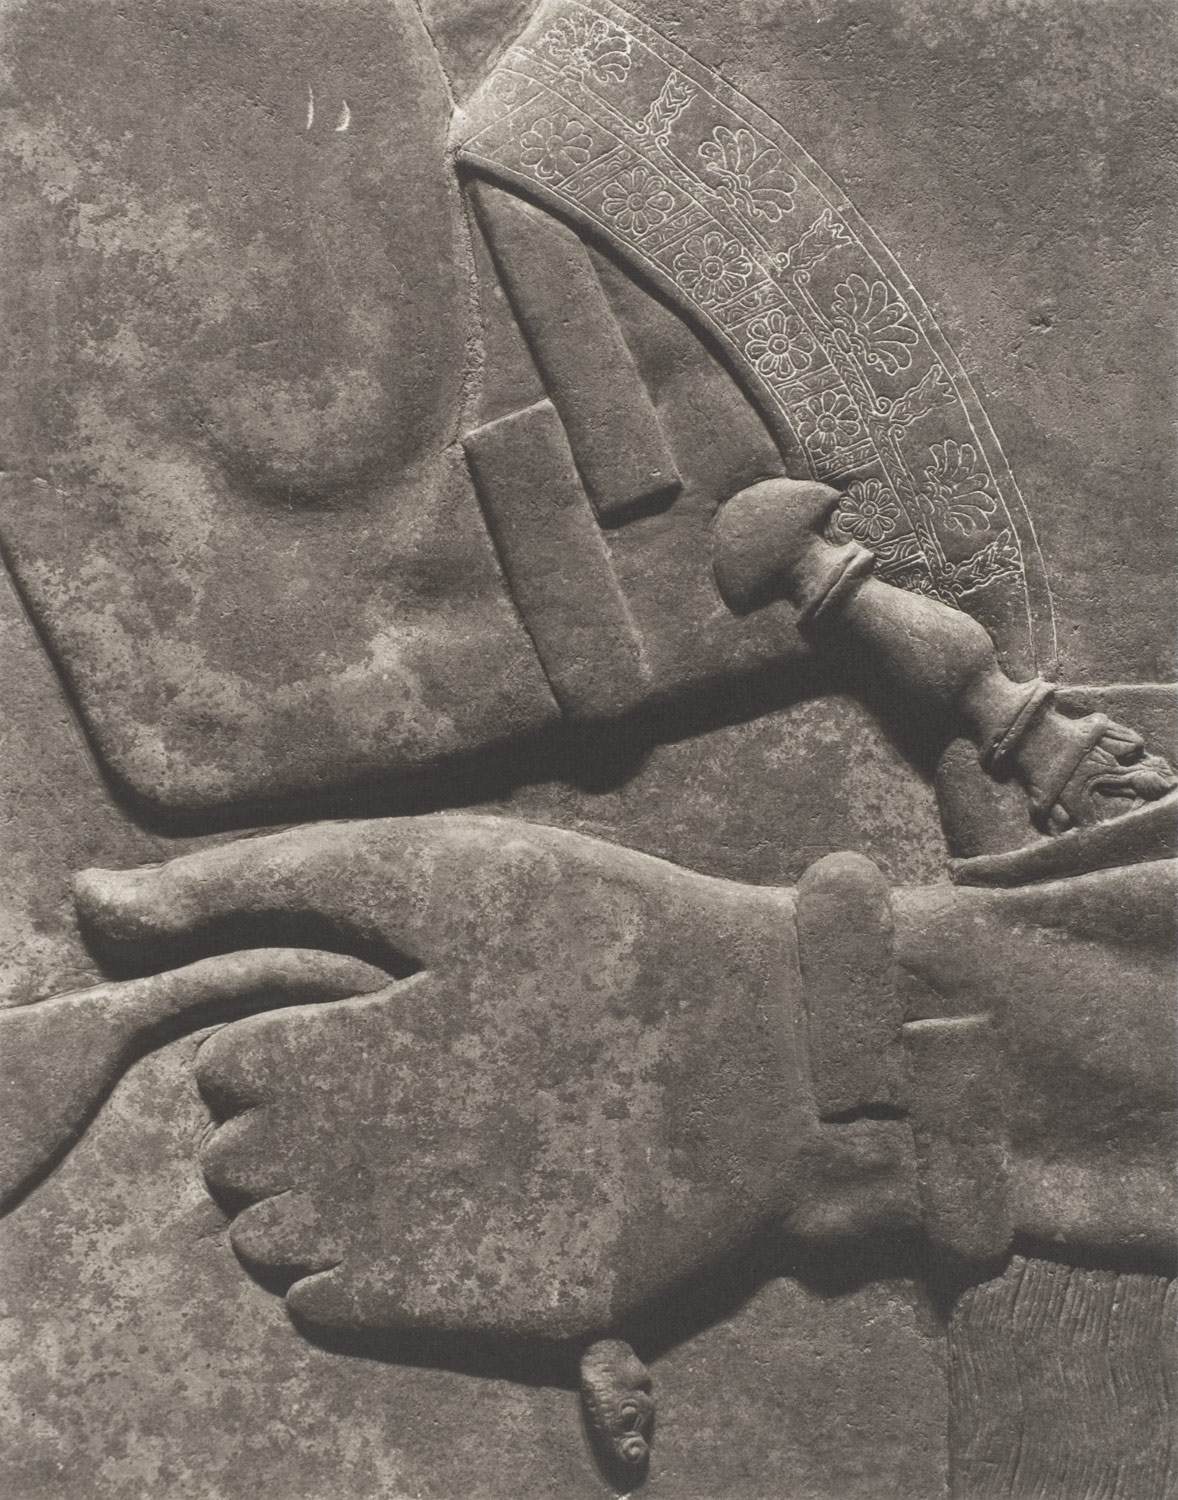 Ashurnasirpal II, King of Assyria, and Cupbearer